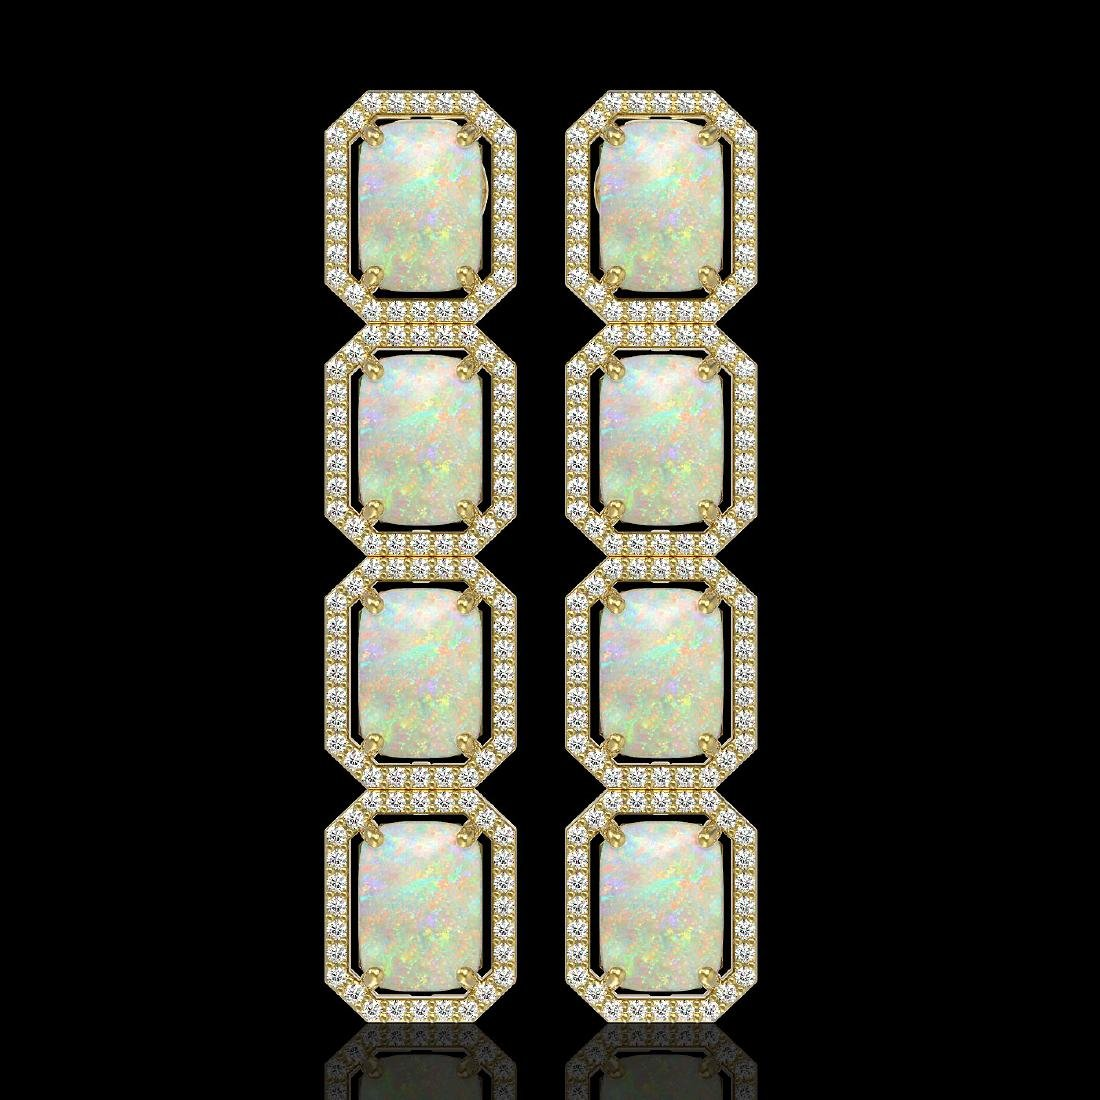 12.99 CTW Opal & Diamond Halo Earrings 10K Yellow Gold